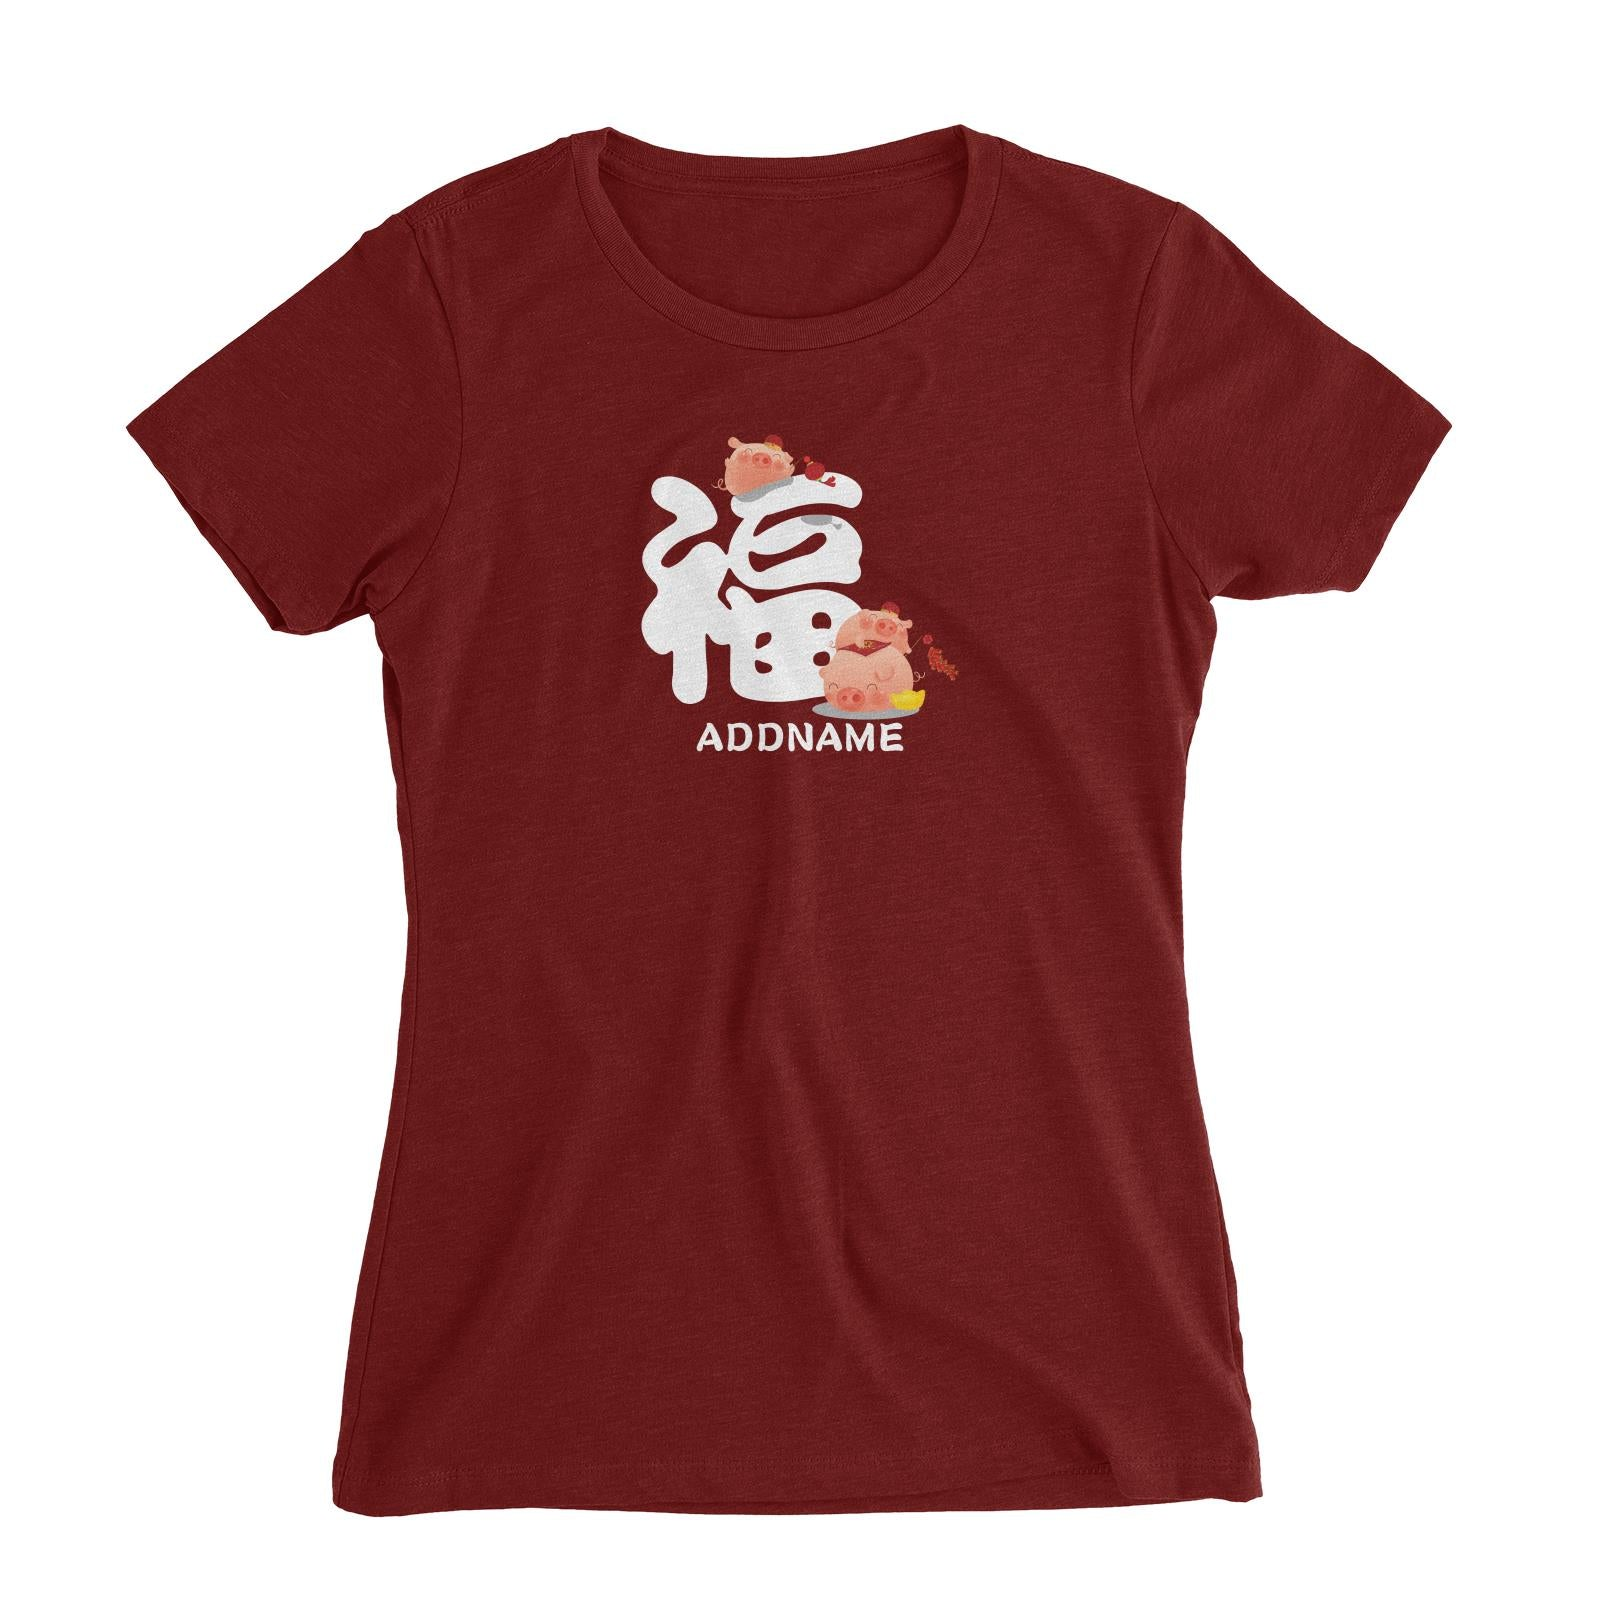 Chinese New Year Pig Group With Happiness Emblem Addname Women Slim Fit T-Shirt